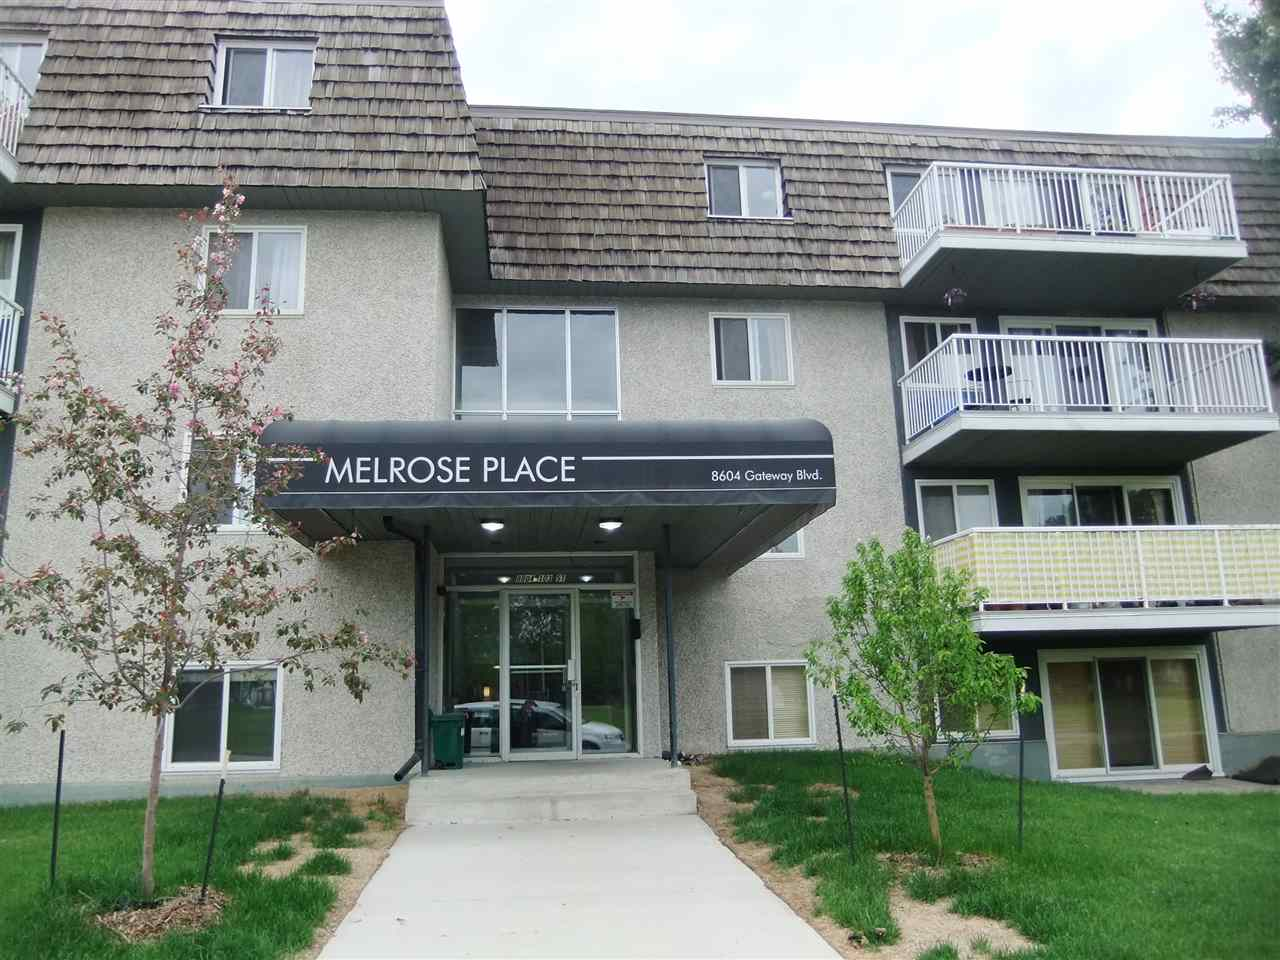 Just over 600 sq ft 1 bedroom on 3rd floor in the heart of Strathcona, spacious living room with huge balcony and great view, full bath, in-suite storage, few blocks from Whyte Ave & River Valley, close to U of A, Hardwood floor in living room and bedroom. Ready to move in right away. Asking only $129,900